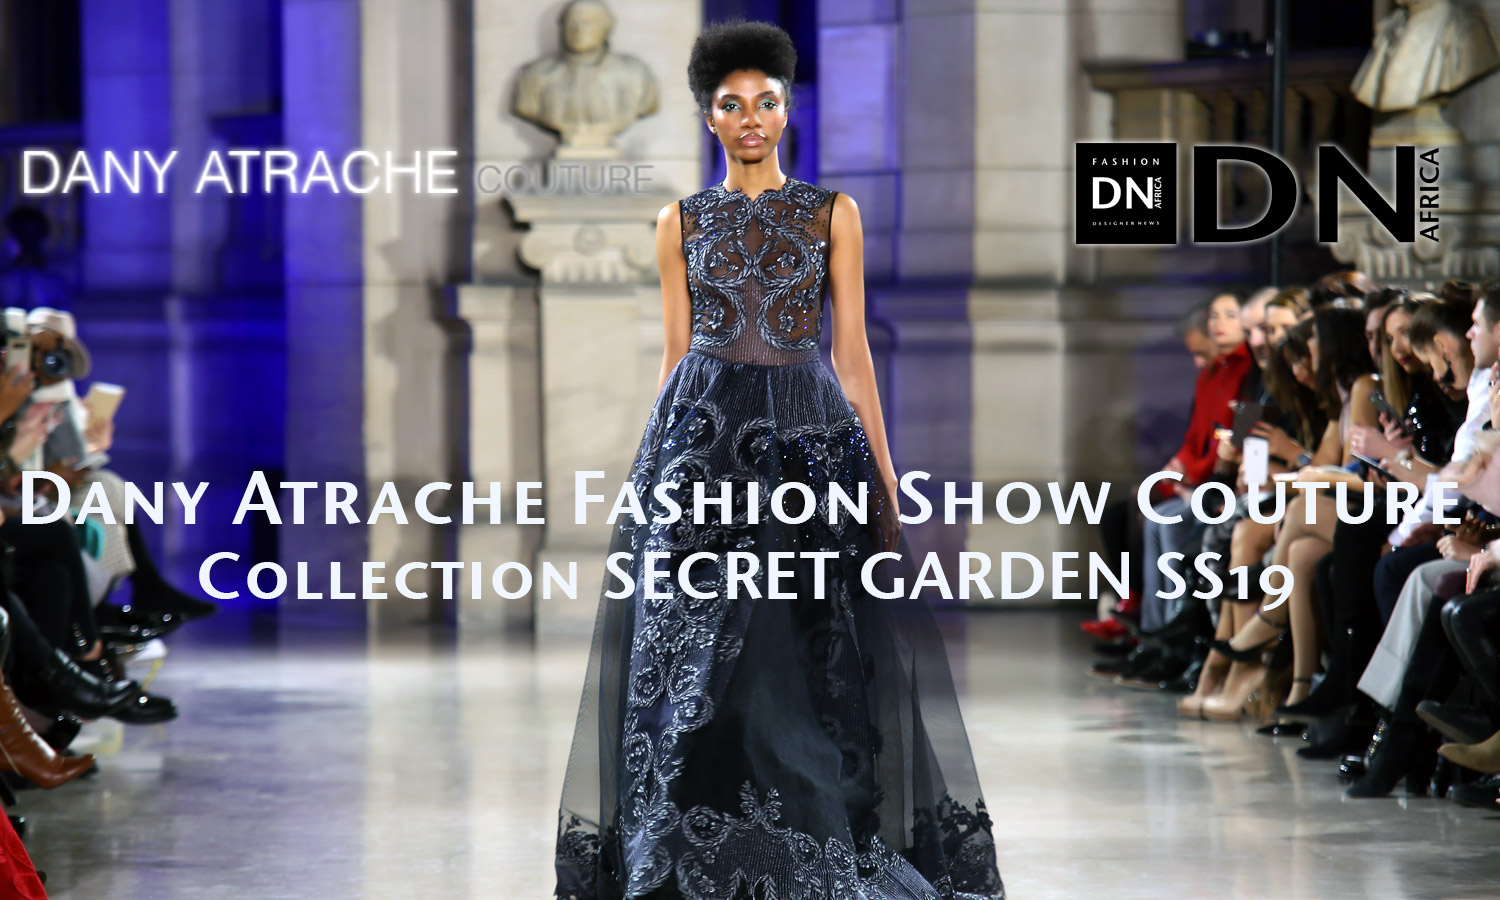 AFRICAN FASHION STYLE MAGAZINE - Dany Atrache Fashion show Couture Collection SECRET GARDEN SS19 - RP BLACKDRESS by Chantal Gemayel - Model Valerie AYENA - Location Ecole de Medecine - Official Media Partner DN AFRICA - STUDIO 24 NIGERIA - STUDIO 24 INTERNATIONAL - Ifeanyi Christopher Oputa MD AND CEO OF COLVI LIMITED AND STUDIO 24 - CHEVEUX CHERIE and Cheveux Cherie studio STUDIO BY MARIEME DUBOZ